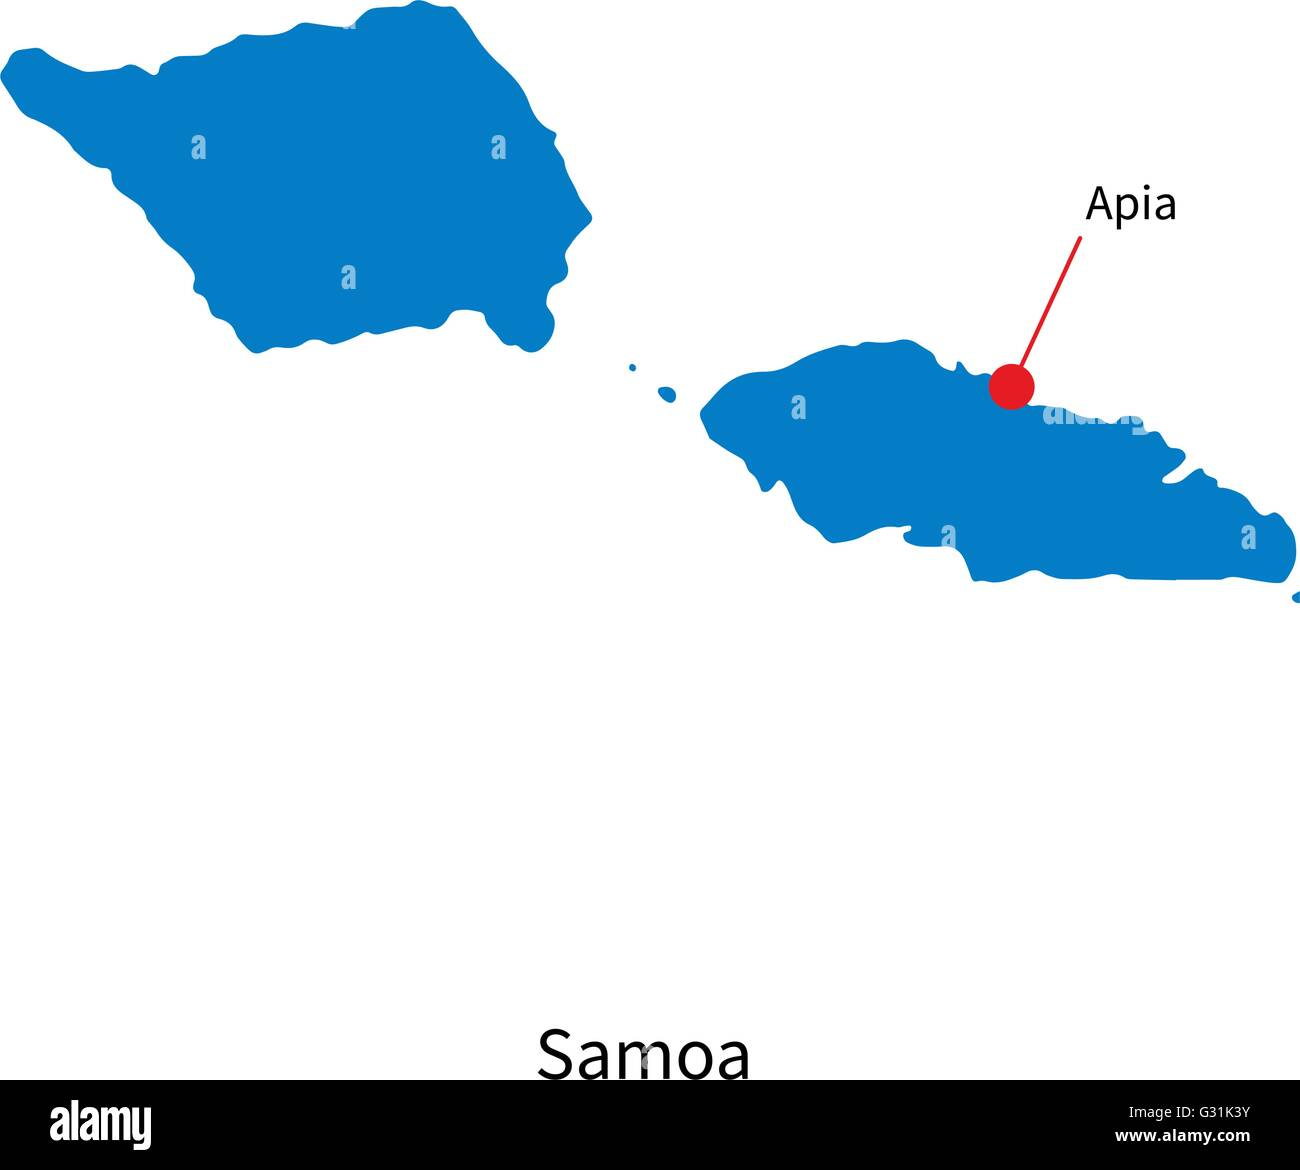 Detailed Vector Map Of Samoa And Capital City Apia Stock Vector - Samoa map vector